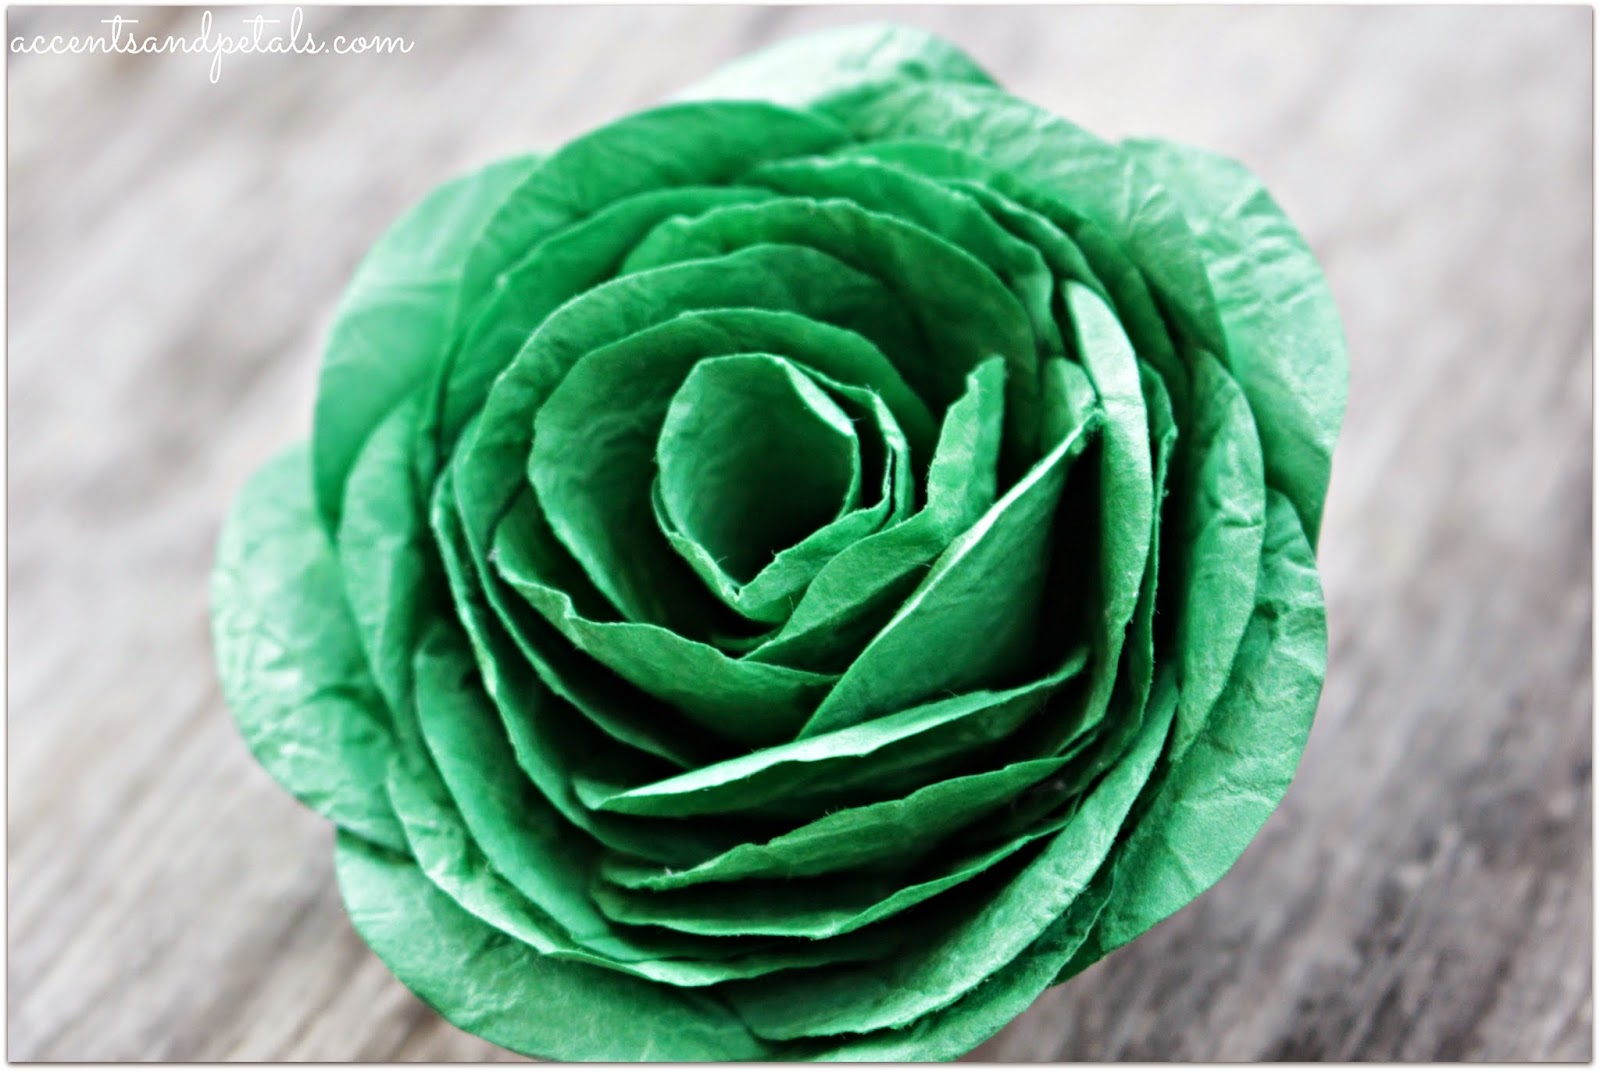 Diy How To Make A Cabbage Rose From Crumpled Paper Reduce Reuse